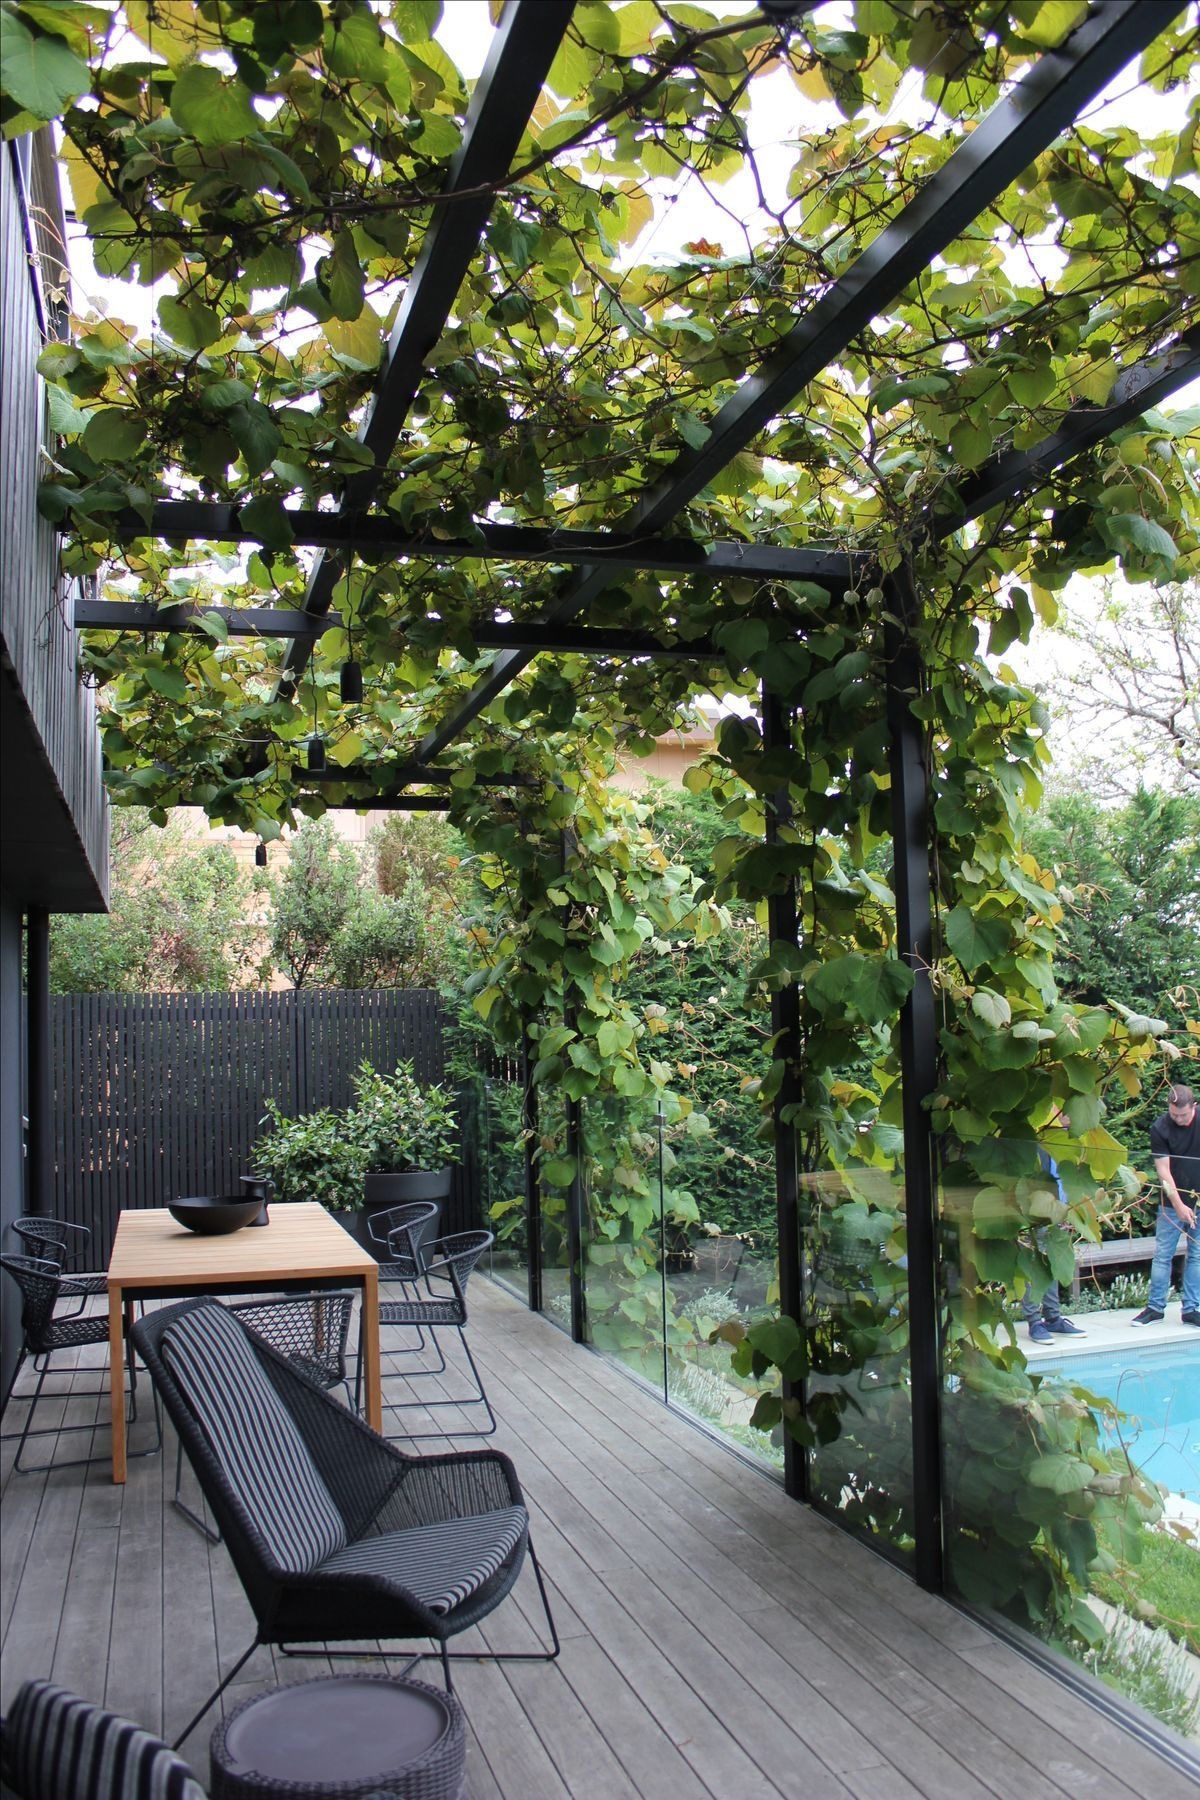 While Browsing Our Gallery Of Metal Frame Pergola Designs Photos,